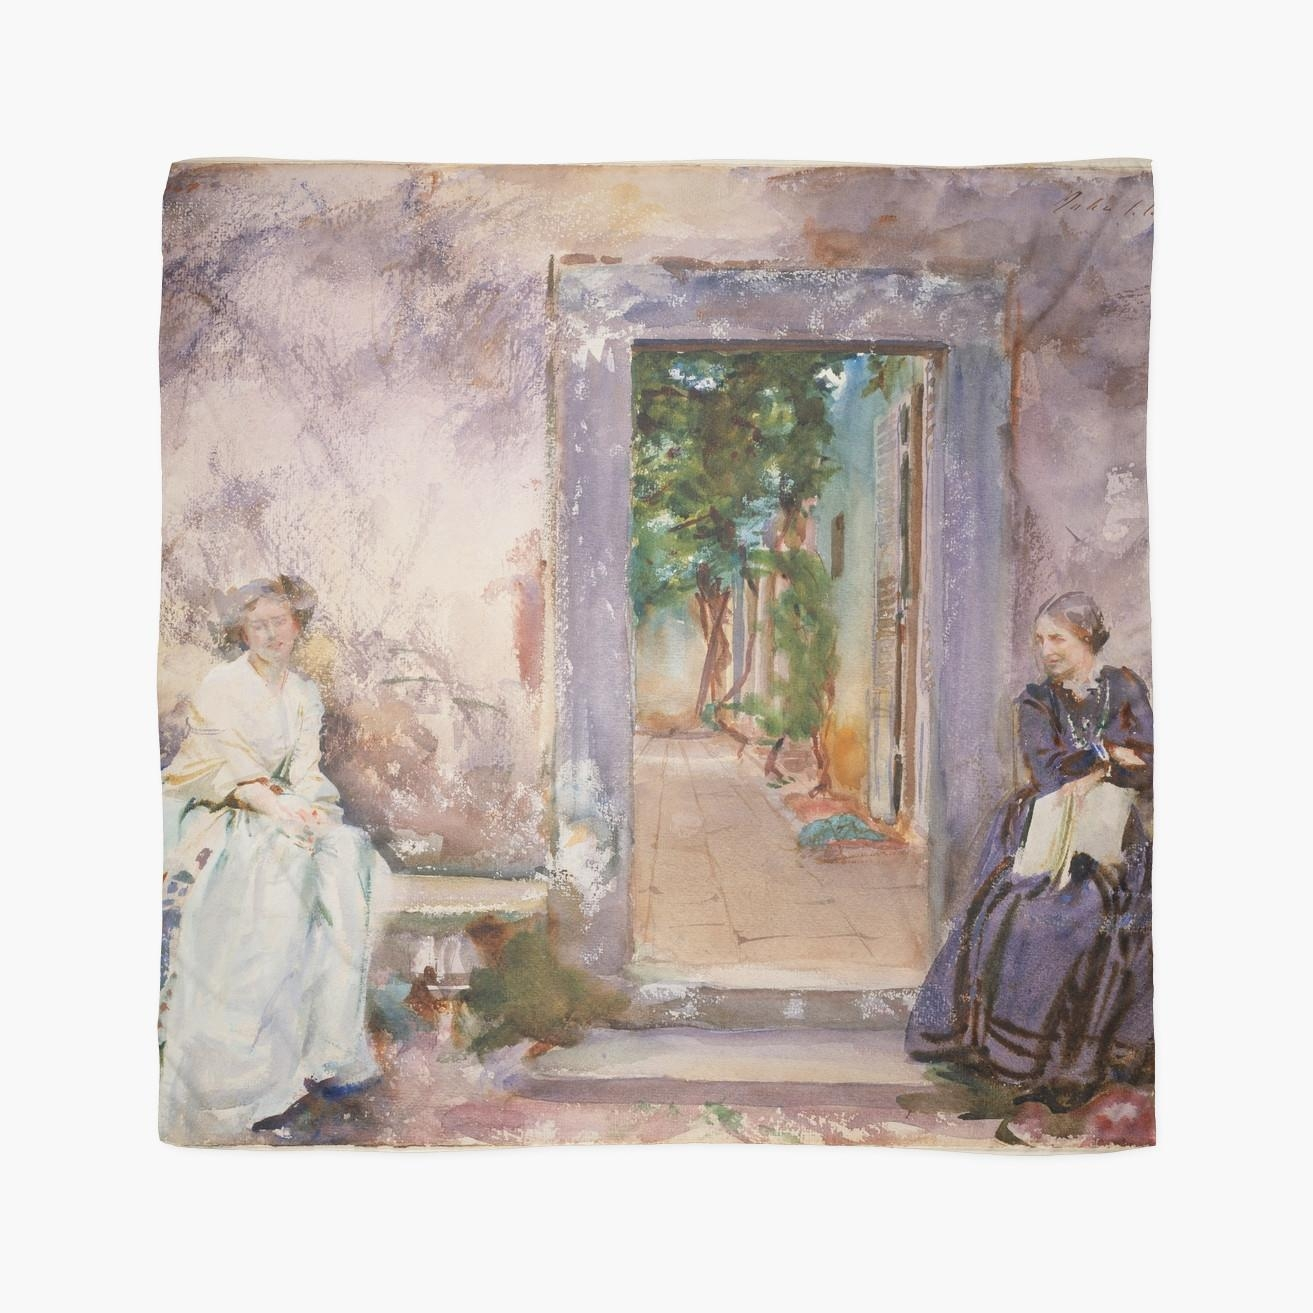 John Singer Sargent – The Garden Wall (View 9 of 20)